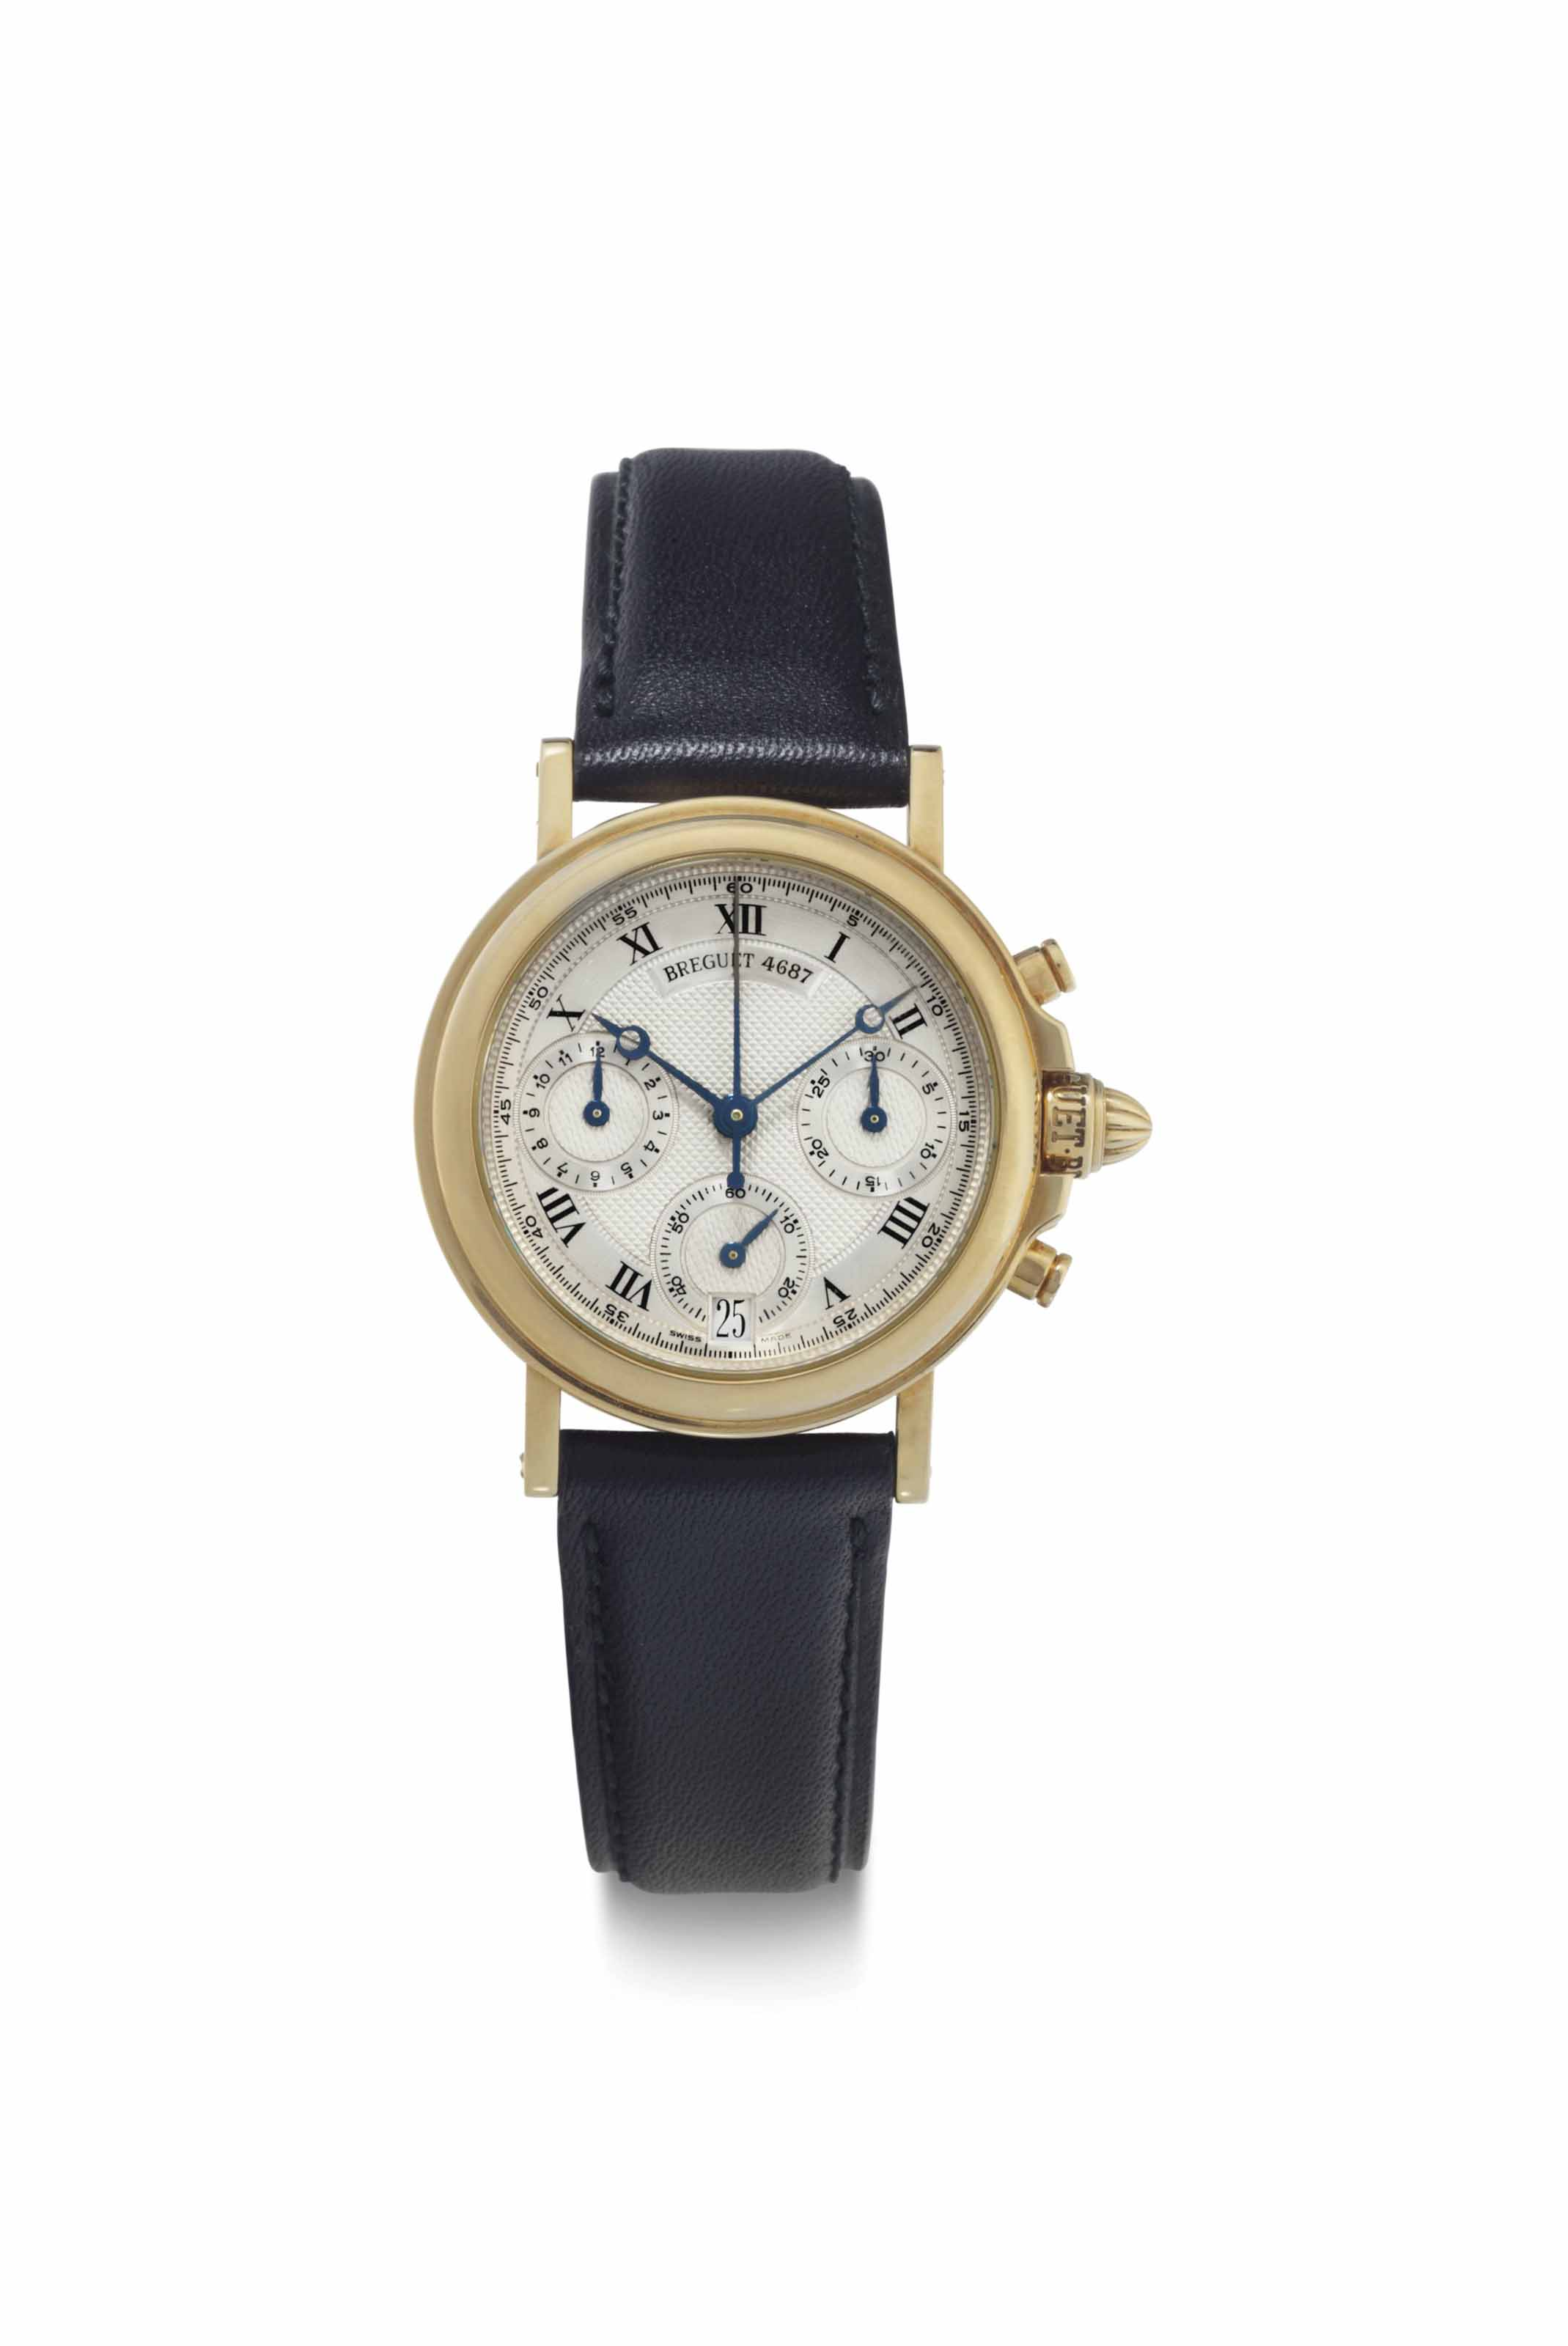 Breguet. A Fine 18k Gold Automatic Chronograph Wristwatch with Date